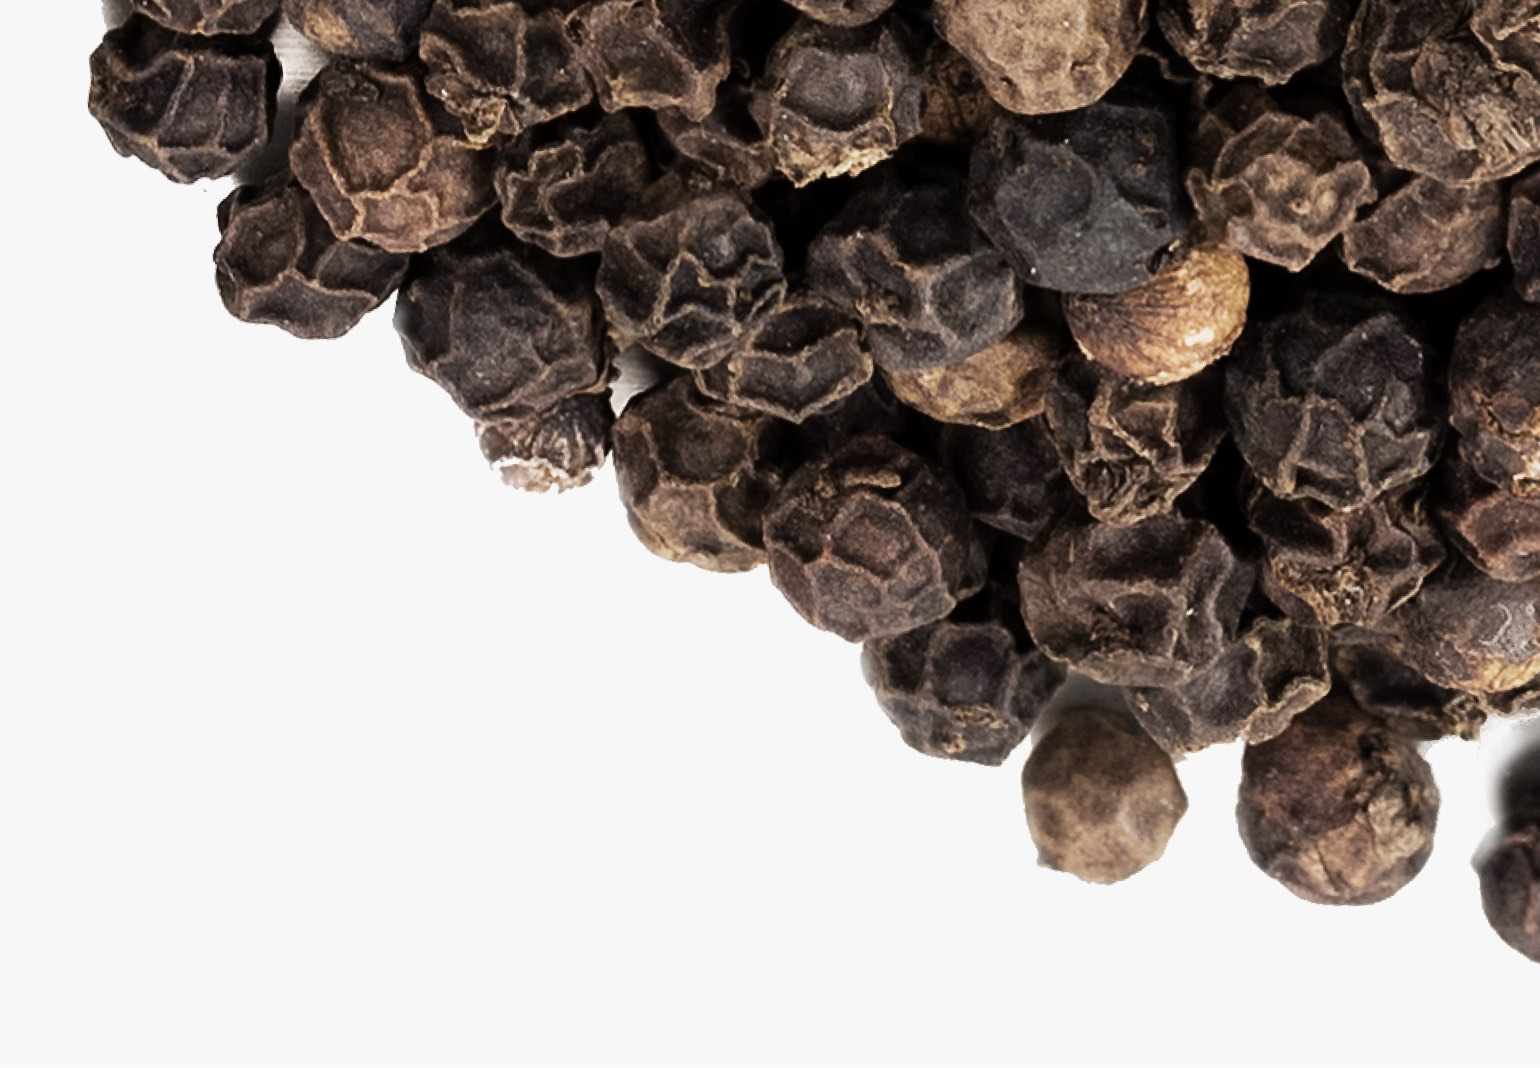 Whole black peppercorns.